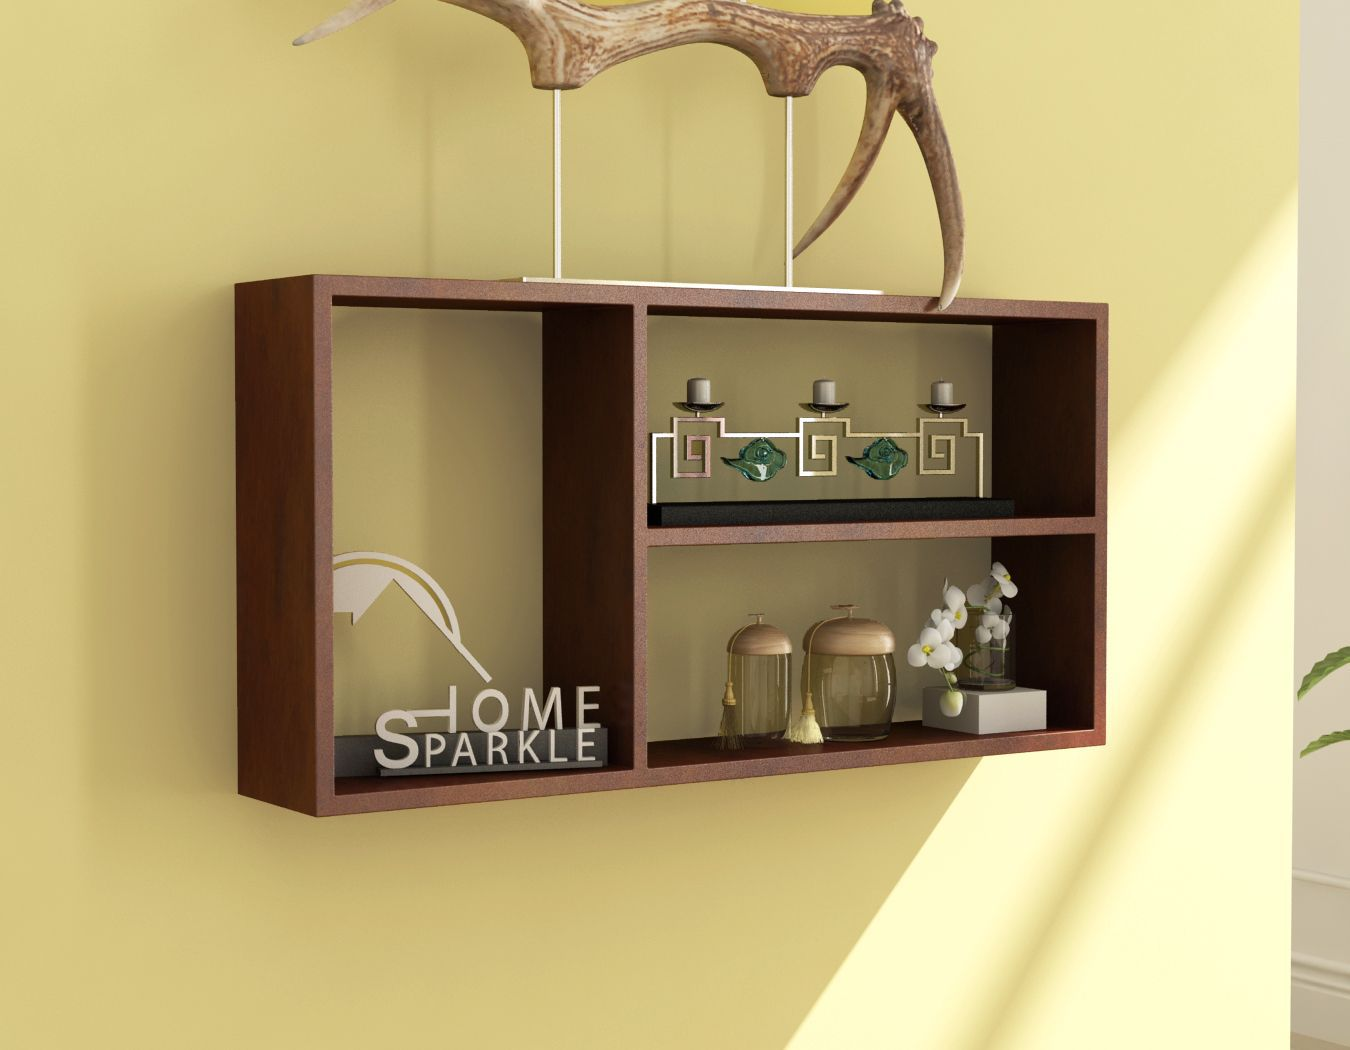 Home Sparkle MDF Rectangle Shelf For Wall Décor -Suitable For Living Room/Bed Room (Designed By Craftsman)